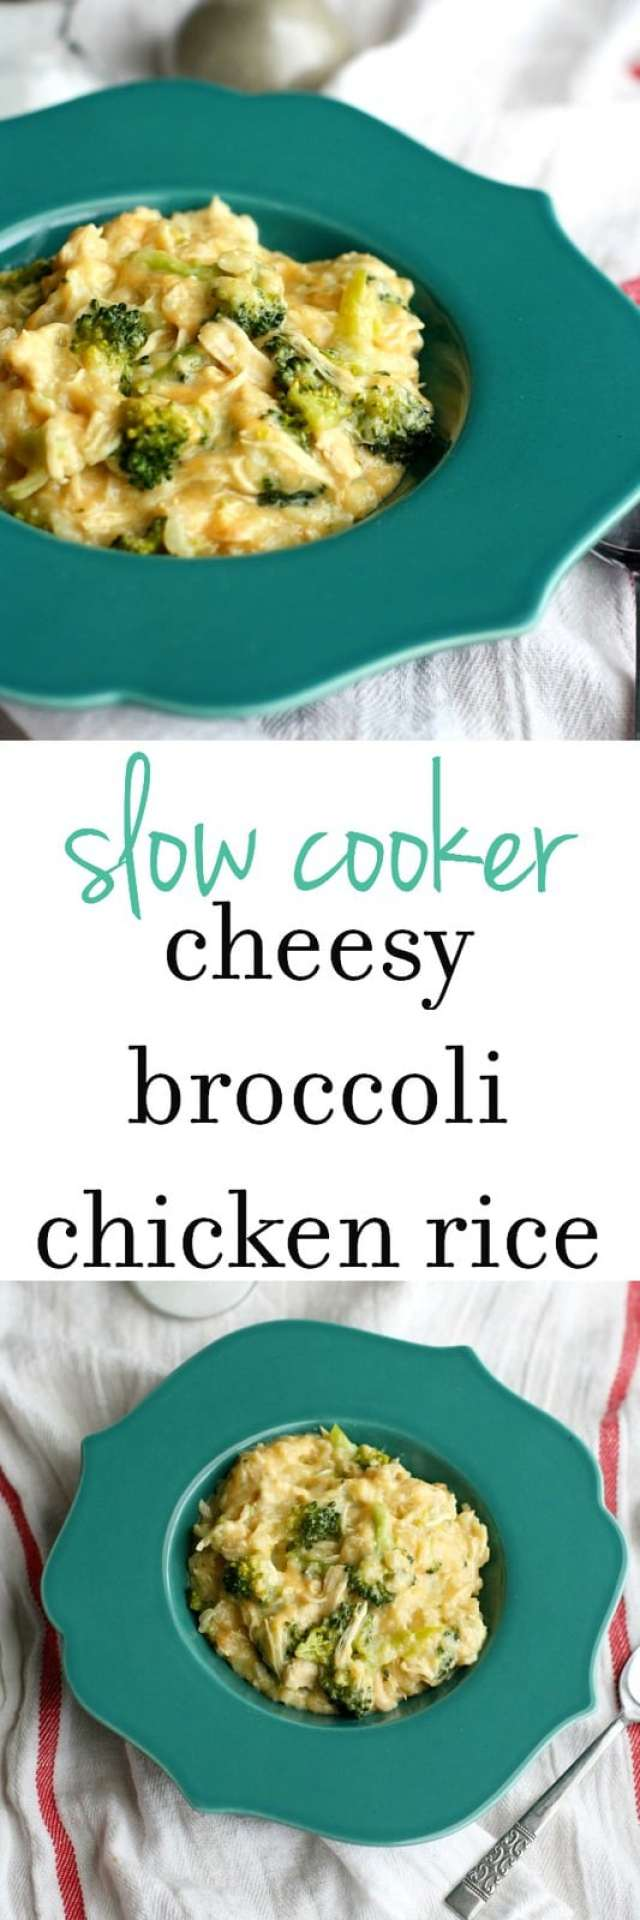 EASY and COMFORTING slow cooker cheesy broccoli chicken rice.